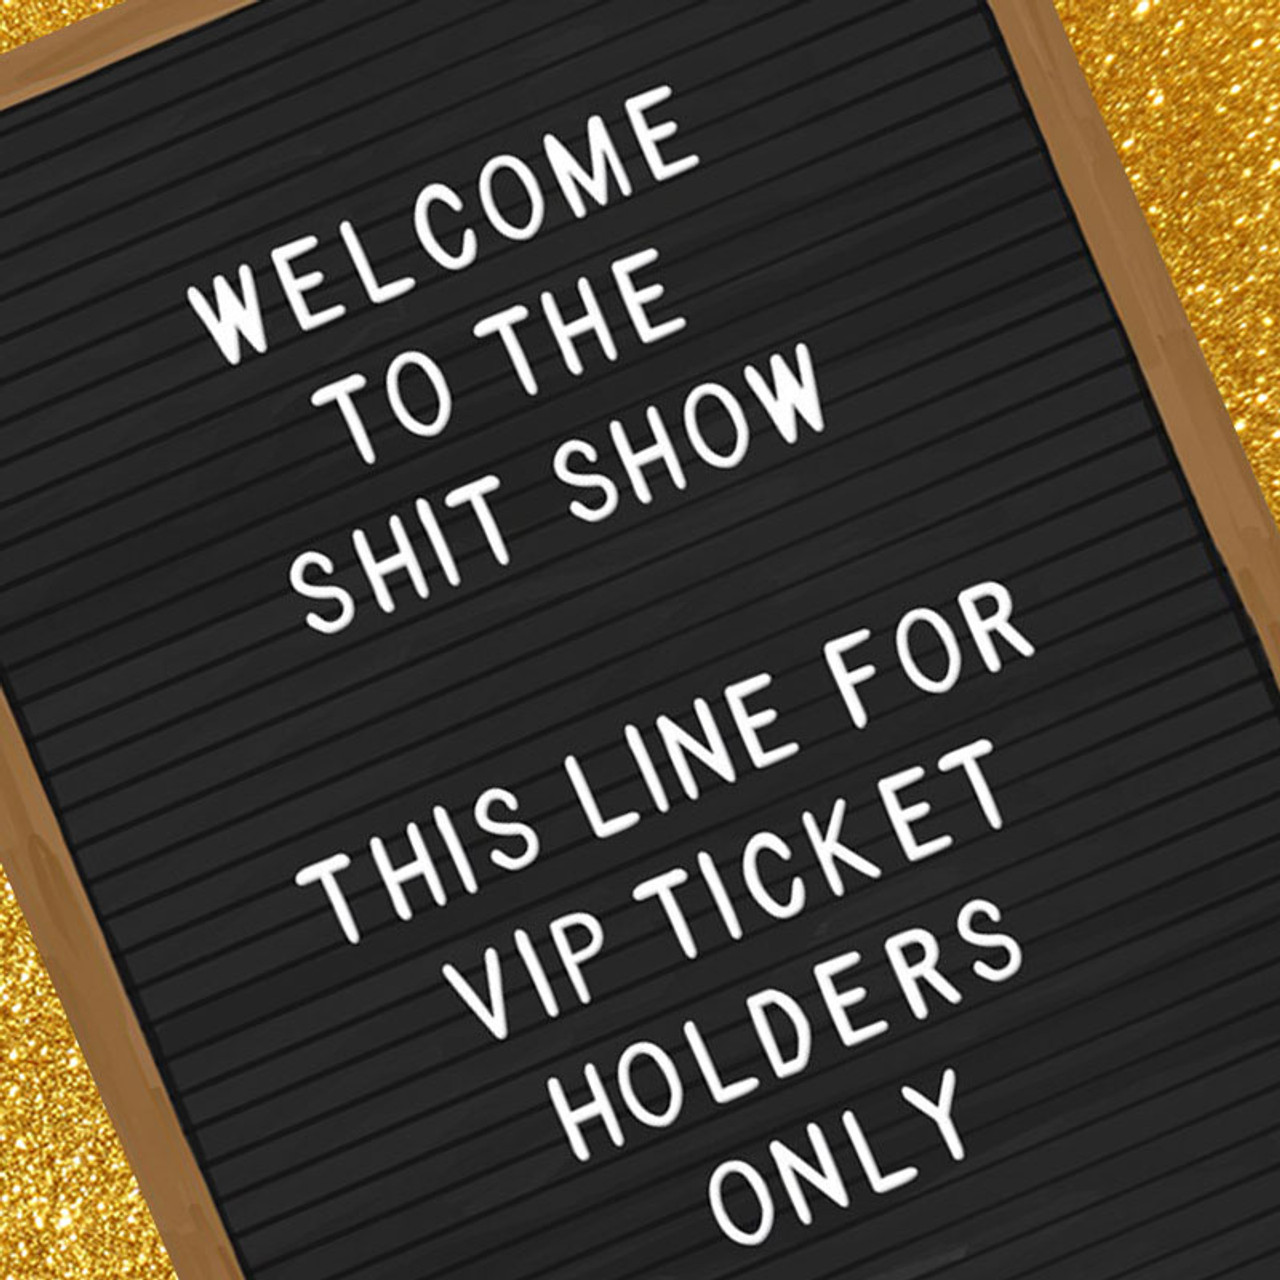 Welcome To The Shit Show. VIP Ticket Holders Only